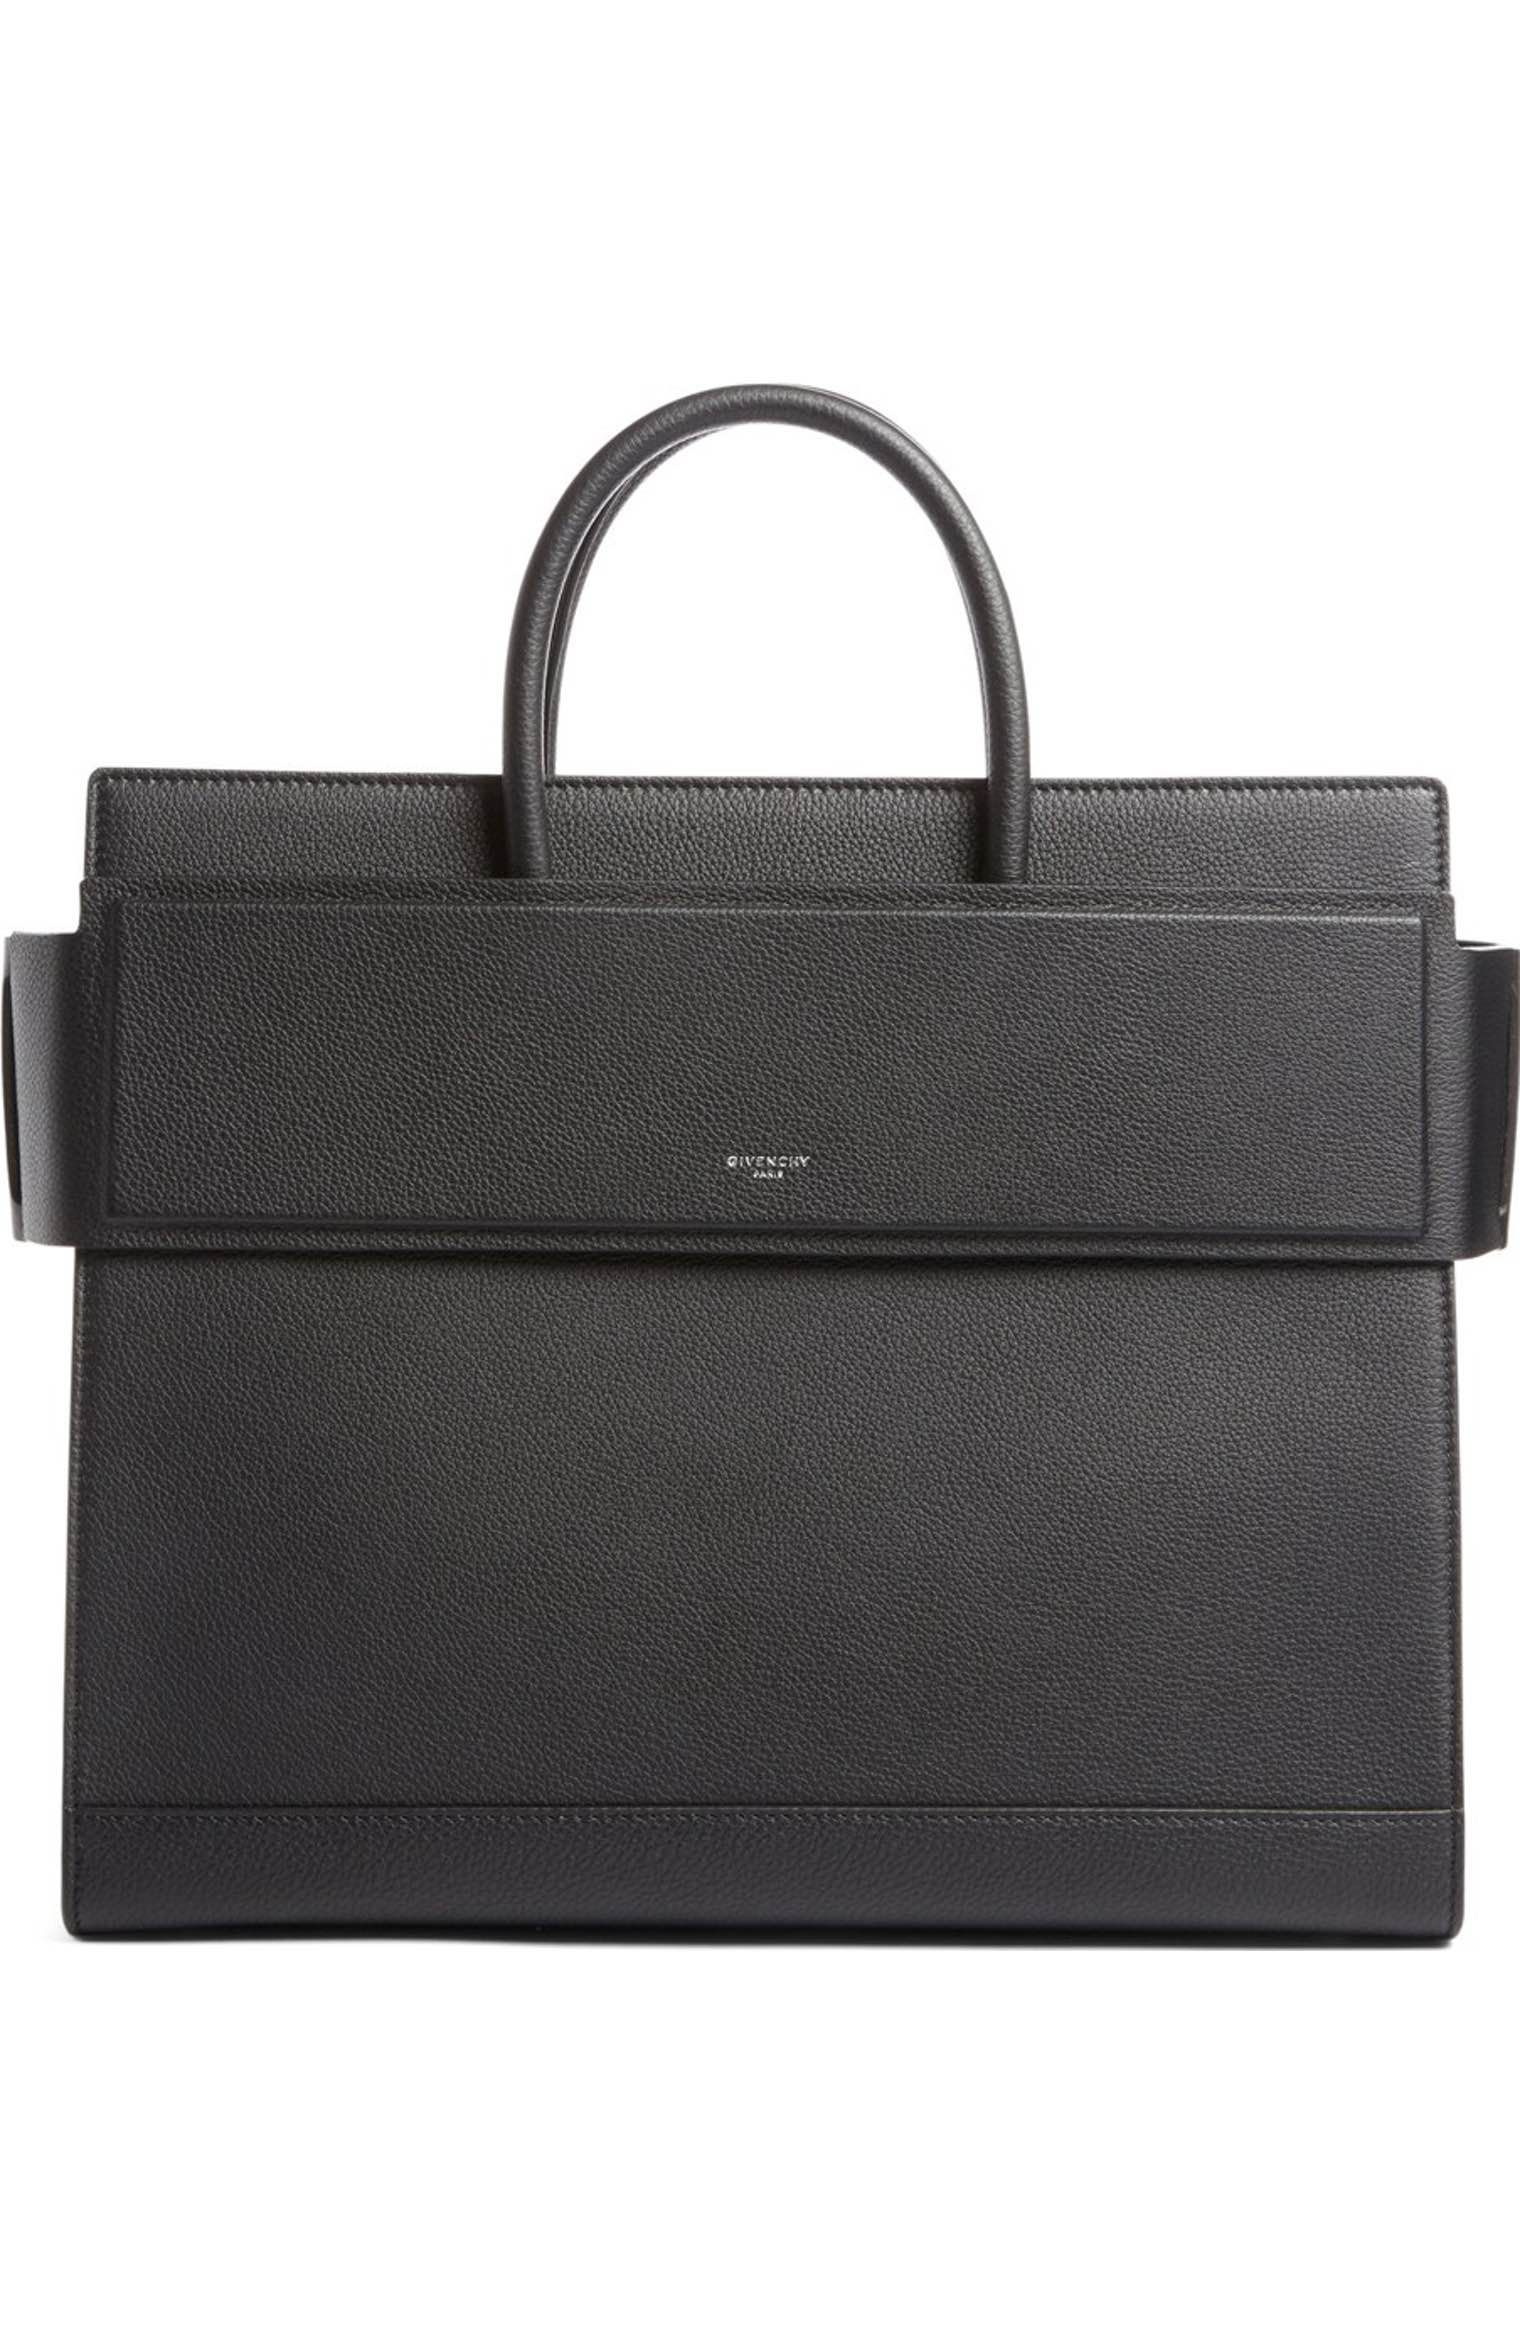 d4e37636d60b Main Image - Givenchy Medium Horizon Grained Calfskin Leather Tote ...